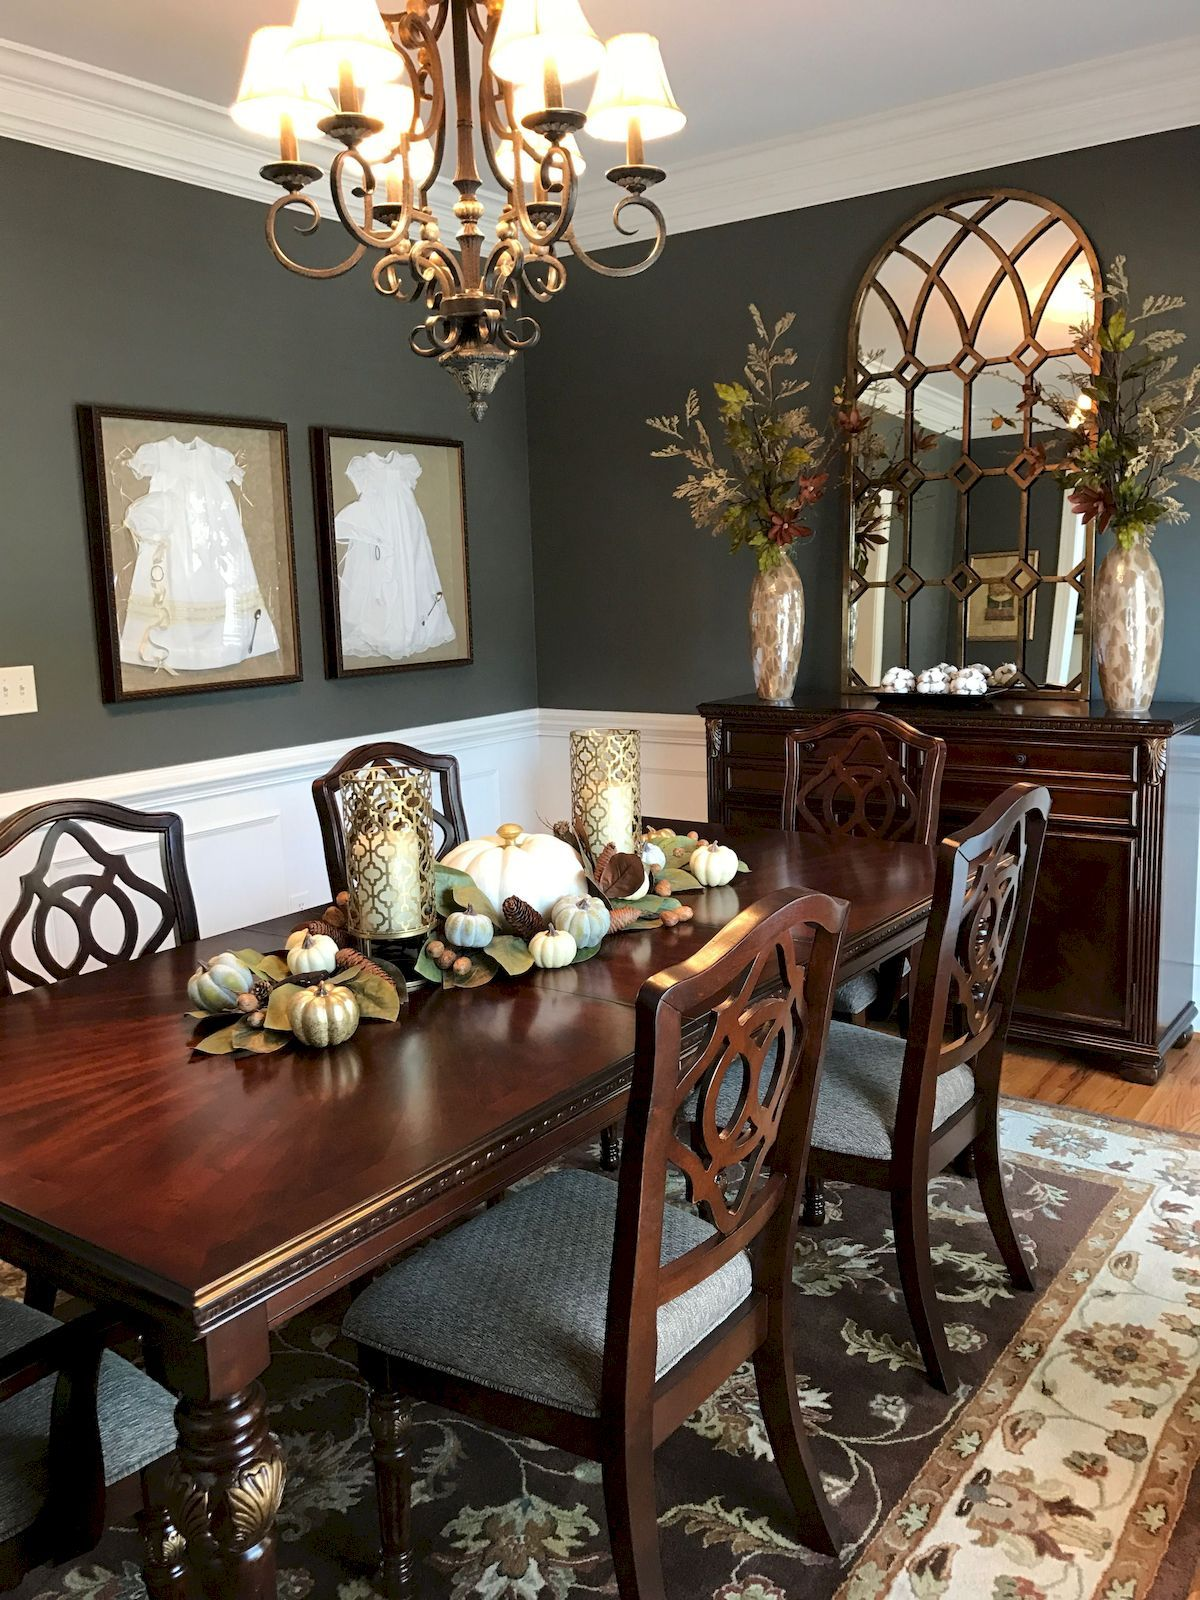 160+ Awesome Formal Design Ideas For Your Dining Room in